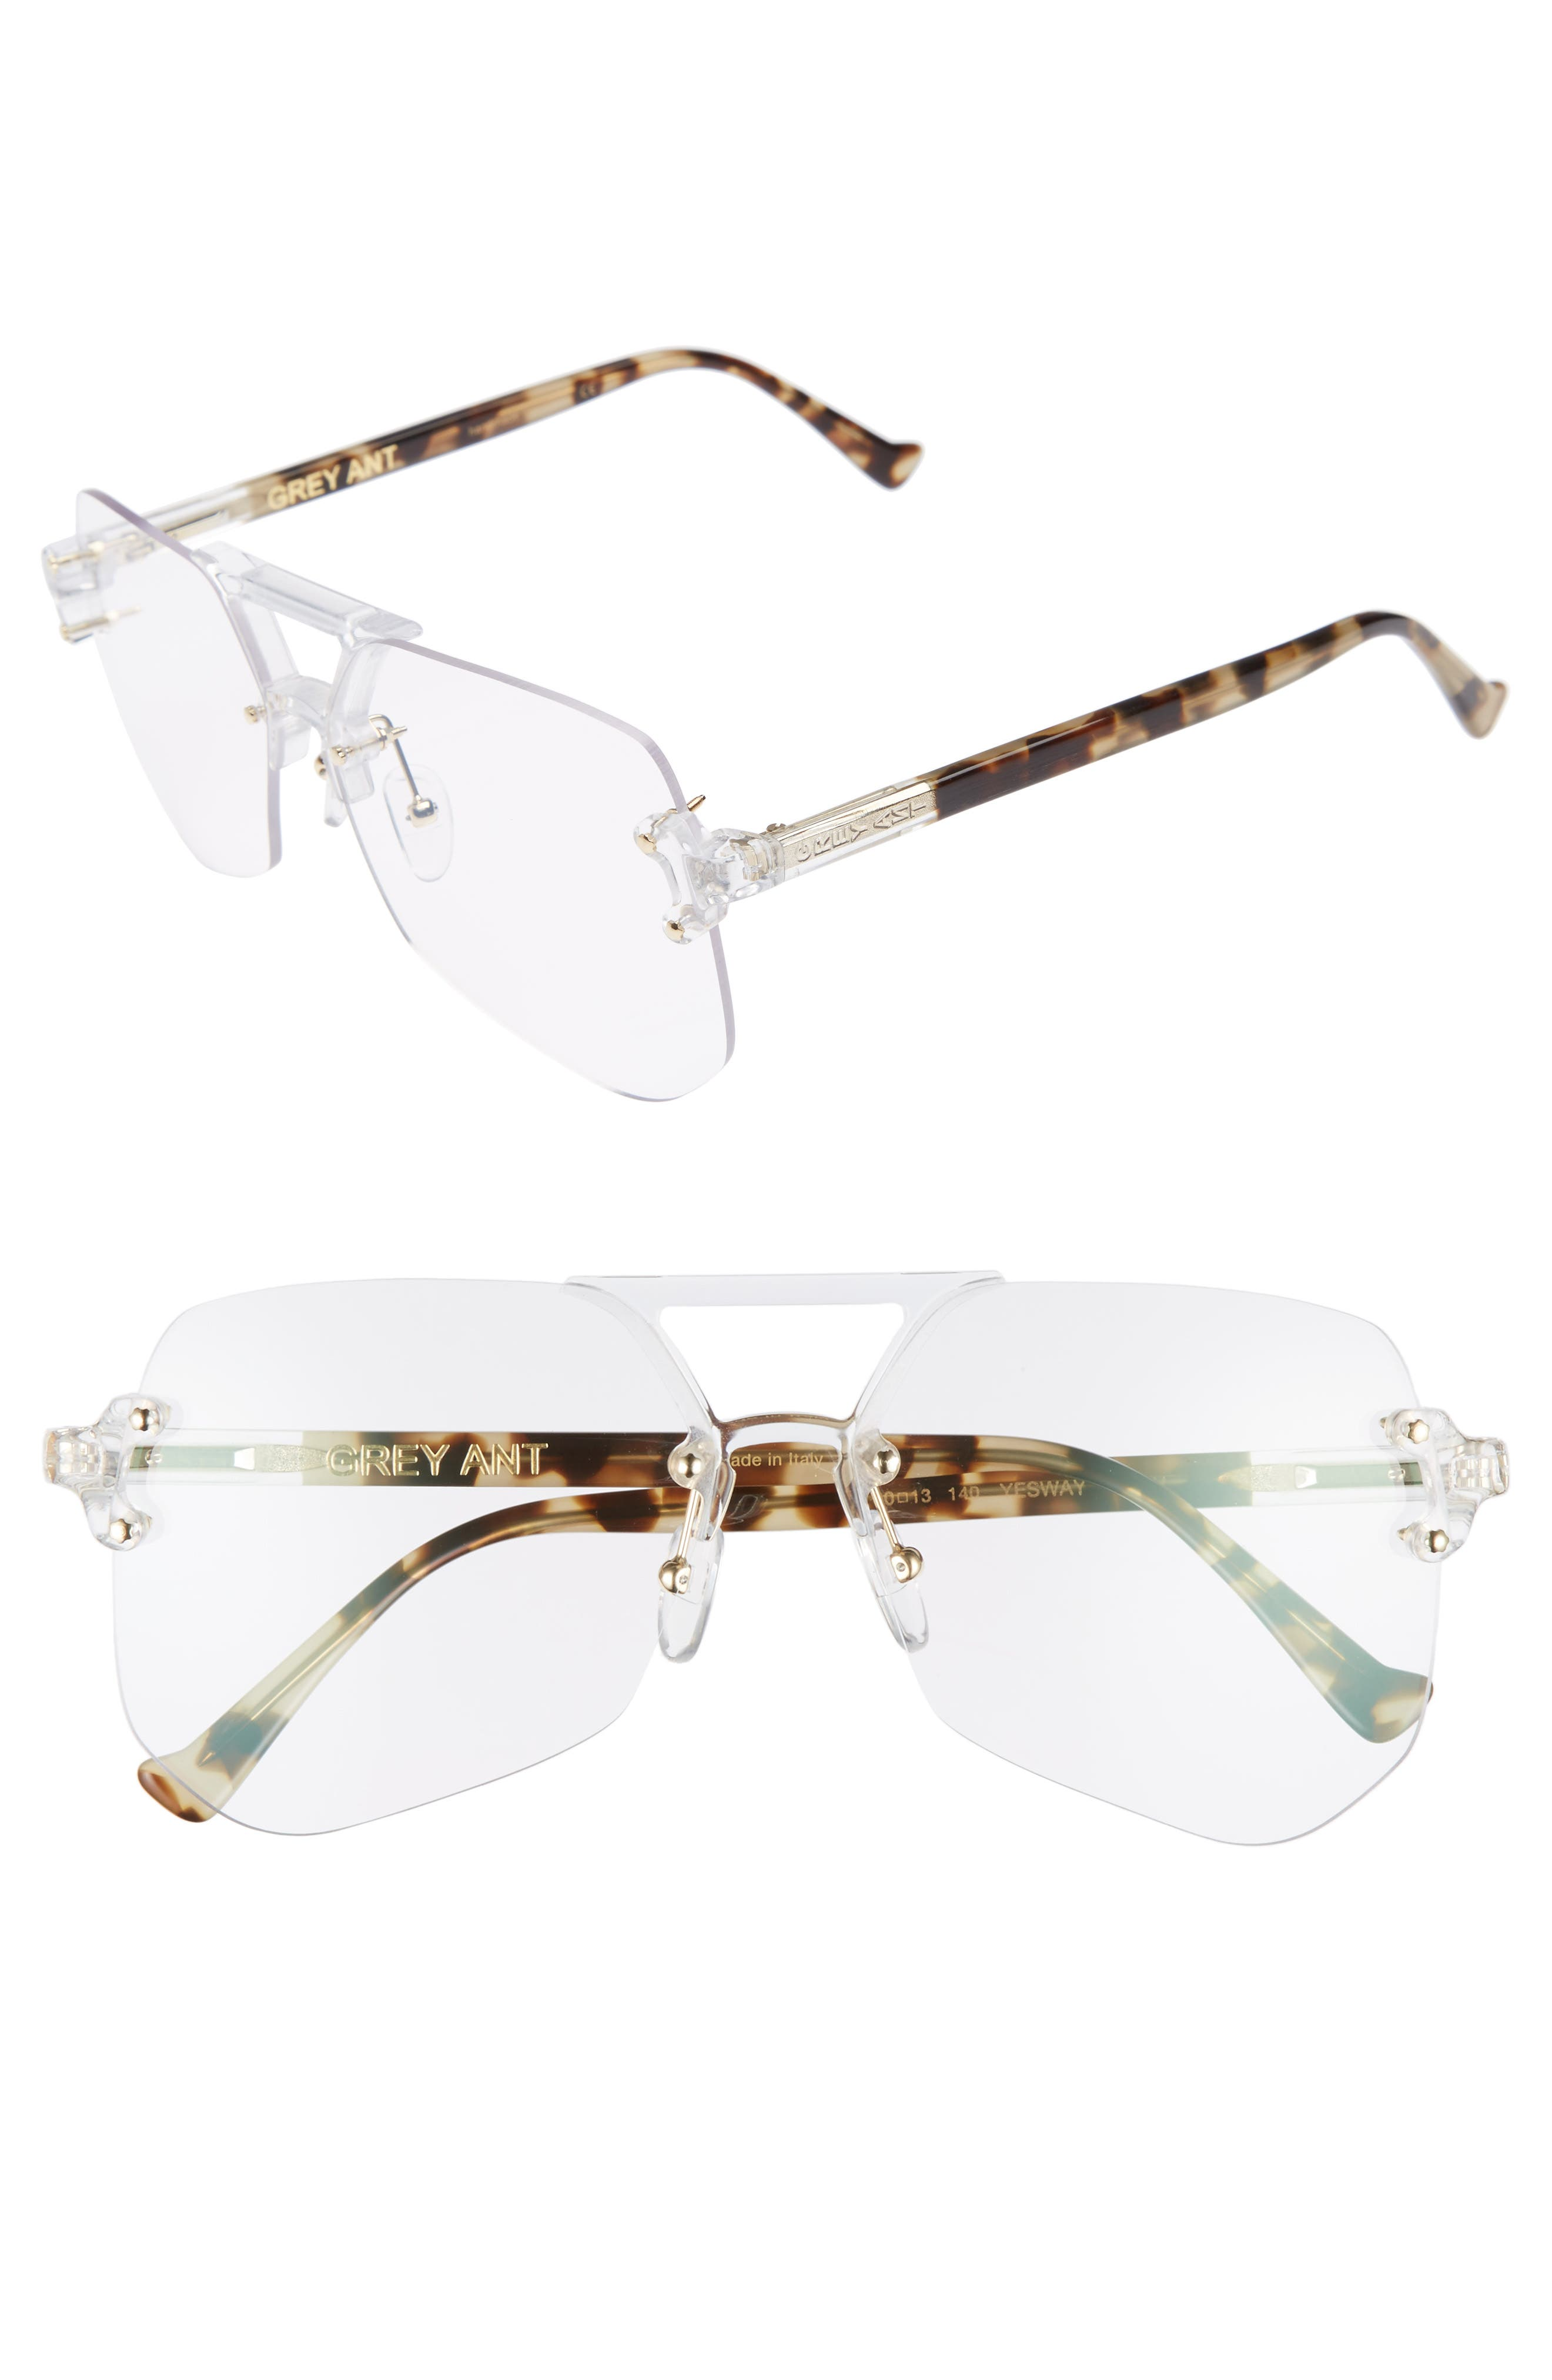 GREY ANT Yesway 60Mm Optical Glasses - Gold / Tortoise